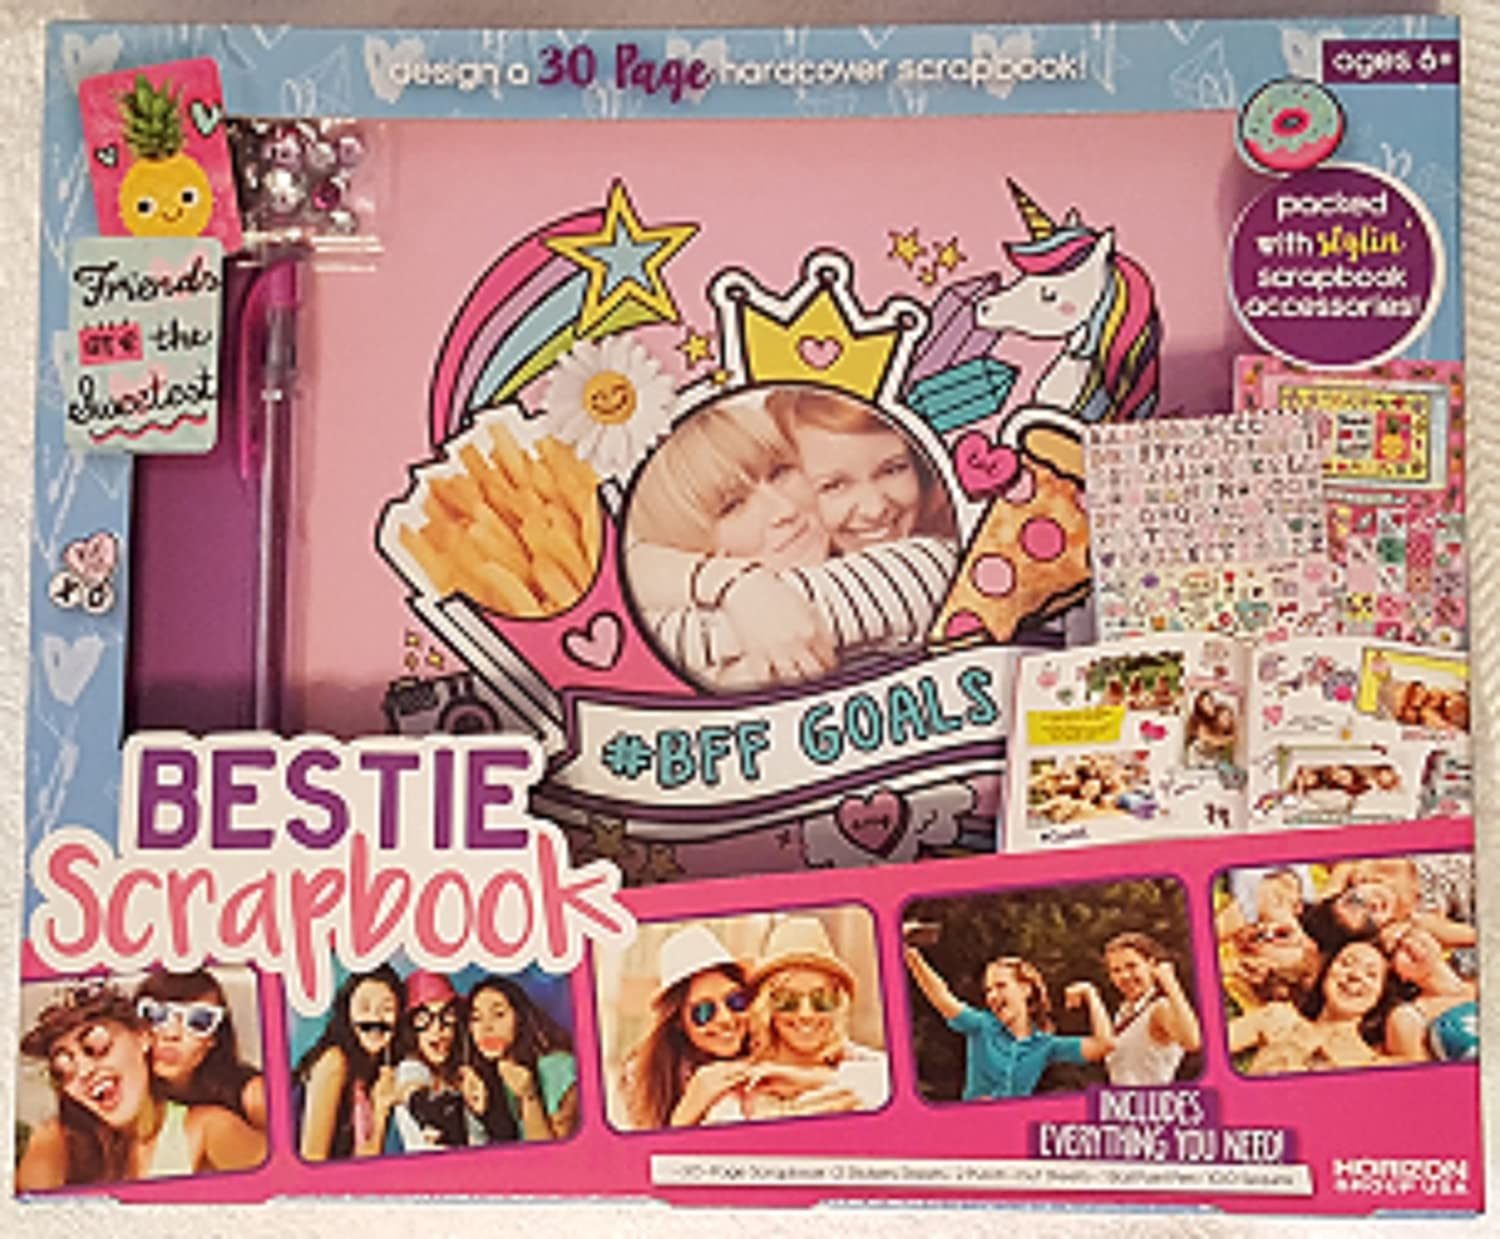 Bestie Scrapbook Kit with 30 Pages and Hardcover with Decoration Supplies